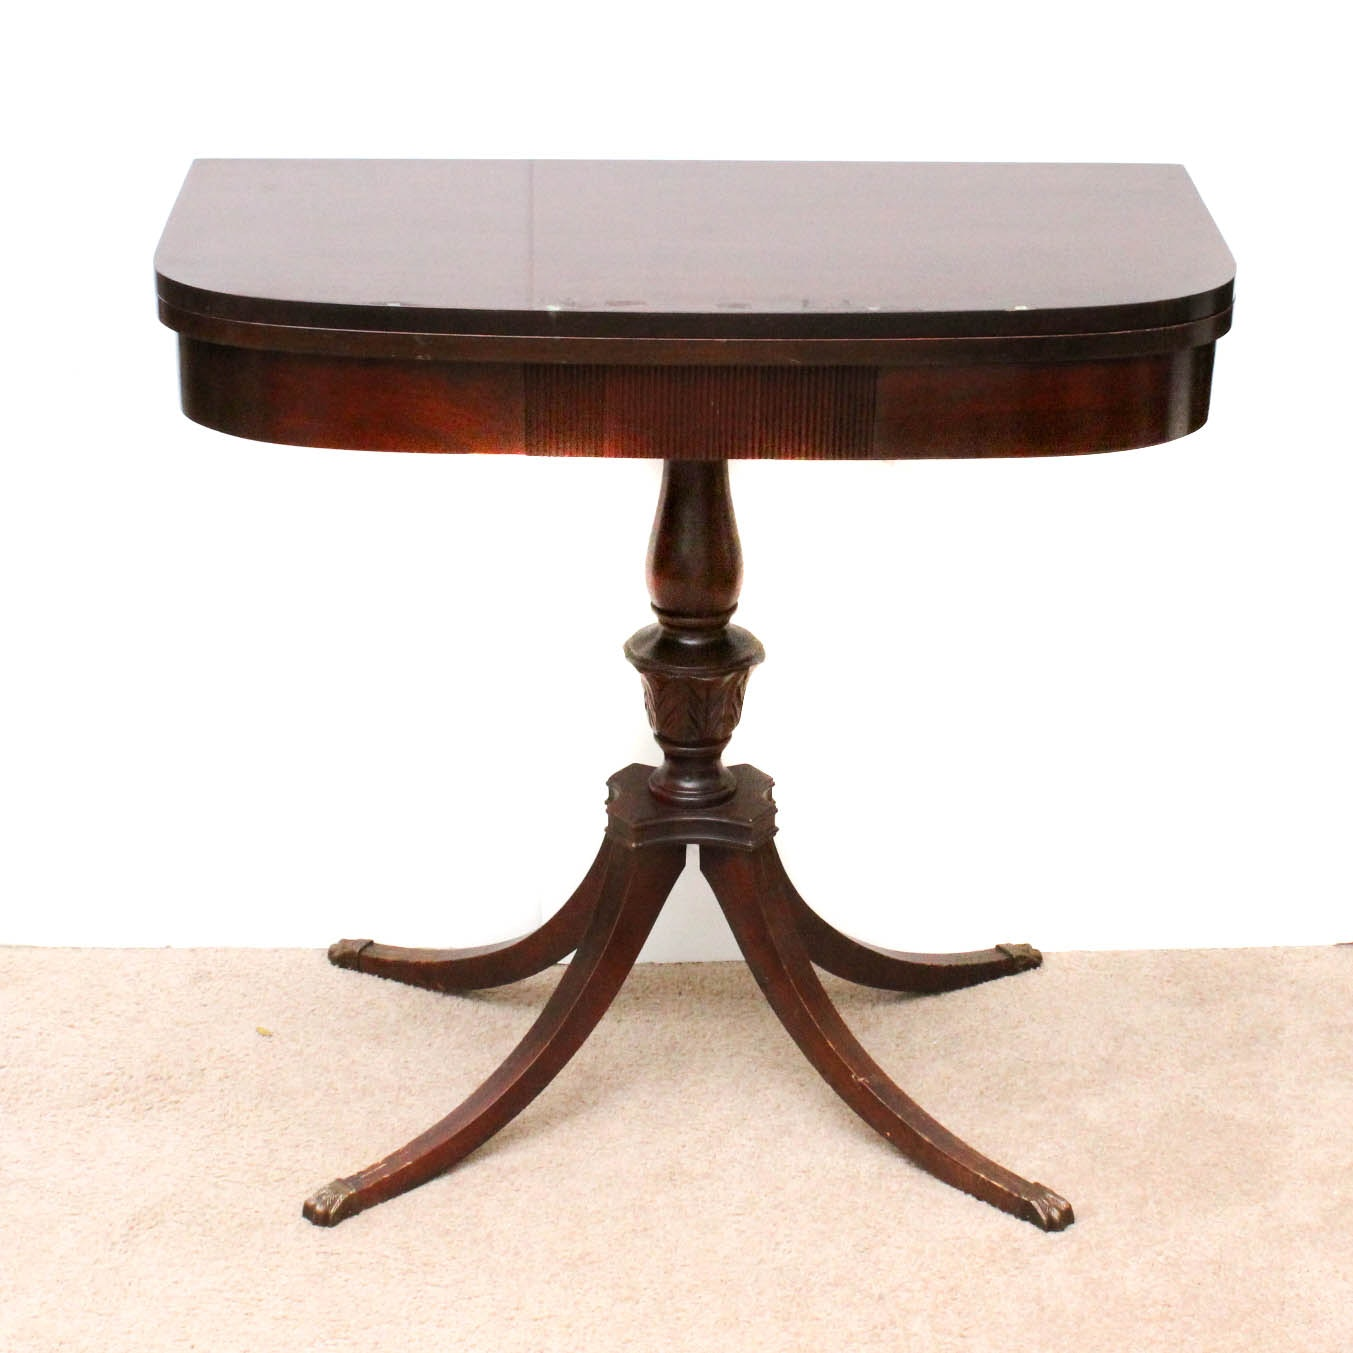 Colonial Revival Mahogany Game Table by Mersman